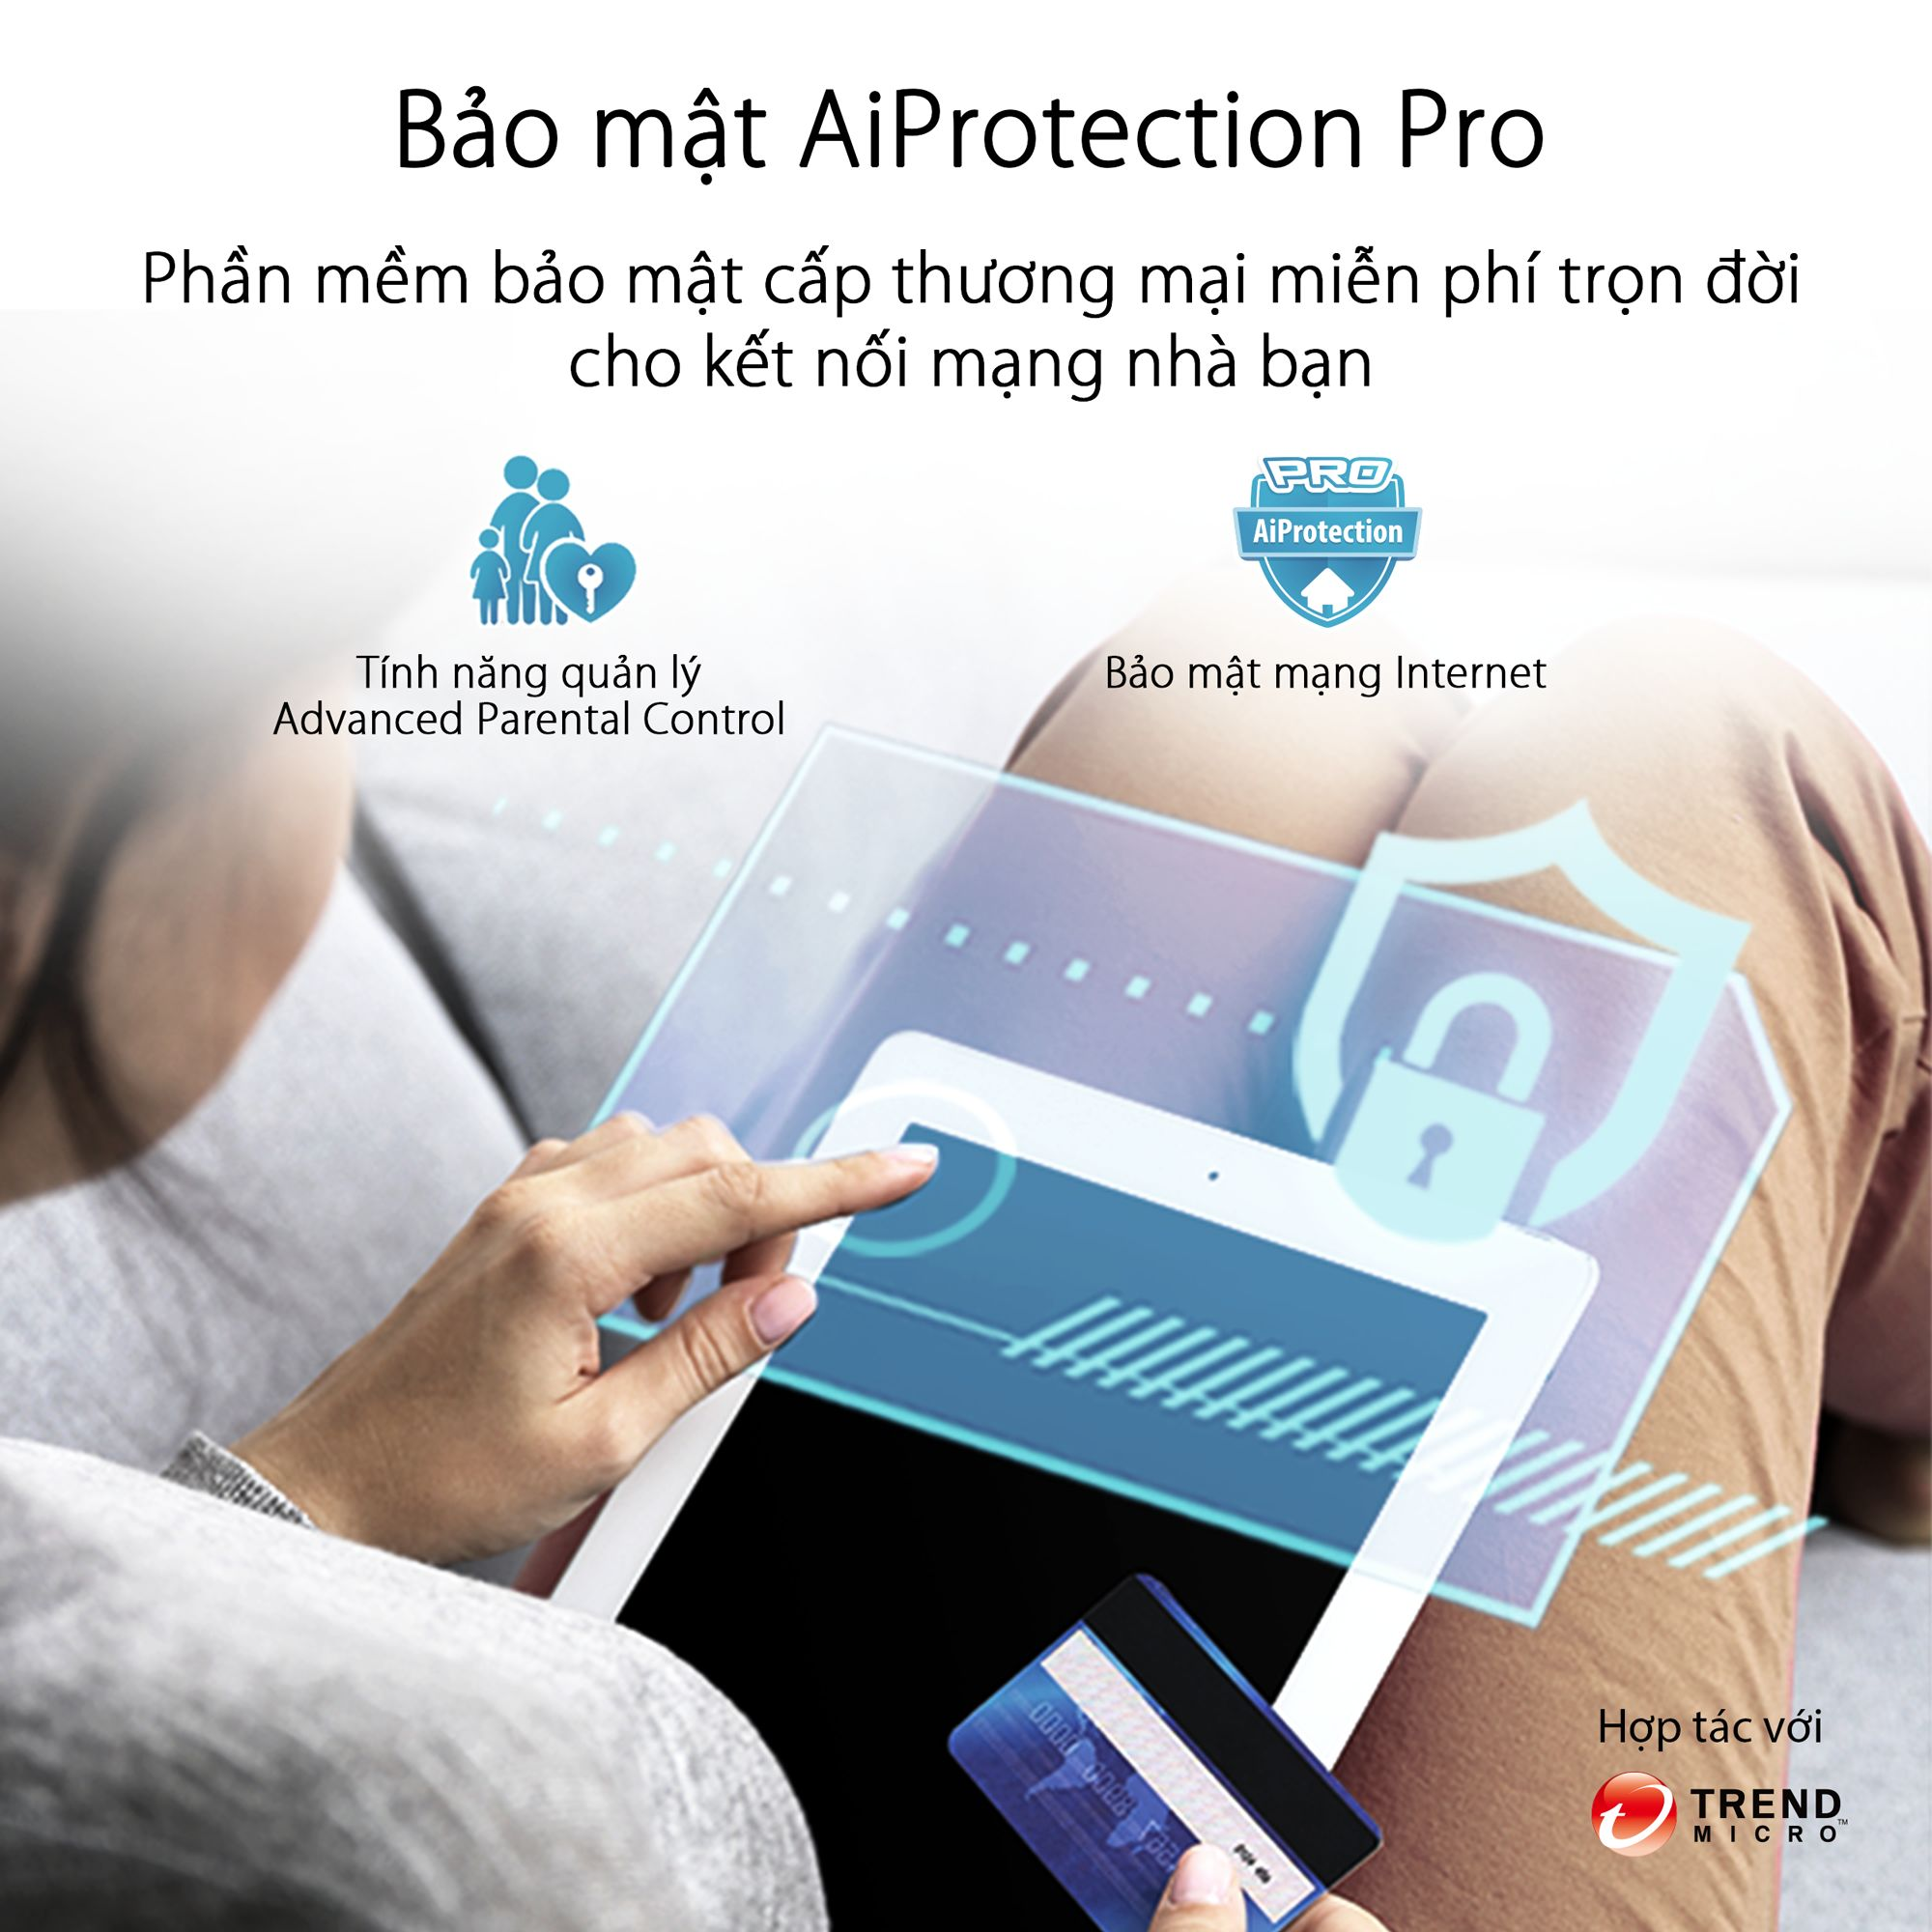 AiProtection Pro